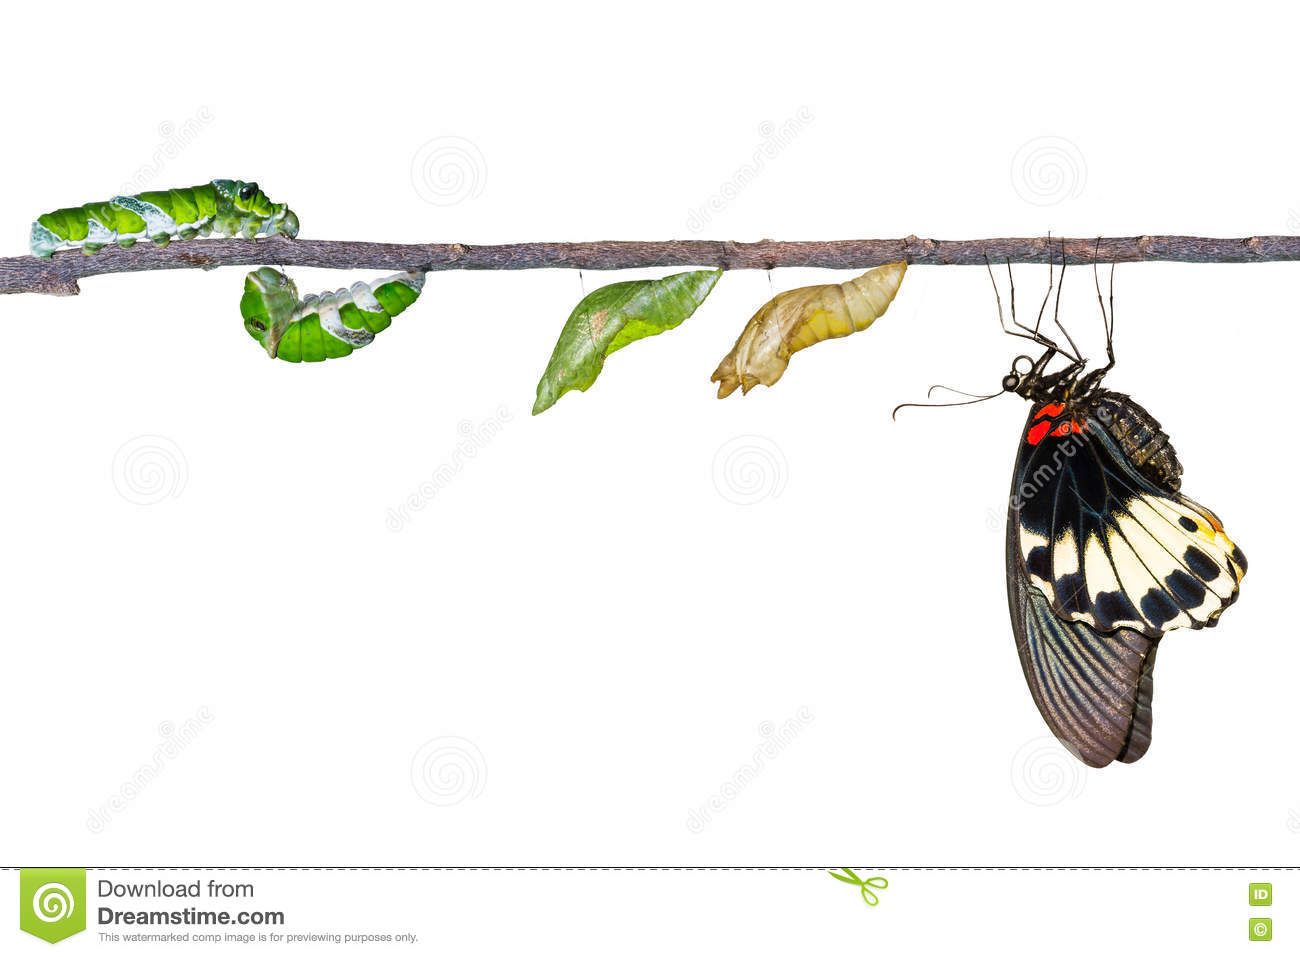 Isolated life cycle of female great mormon butterfly from caterp